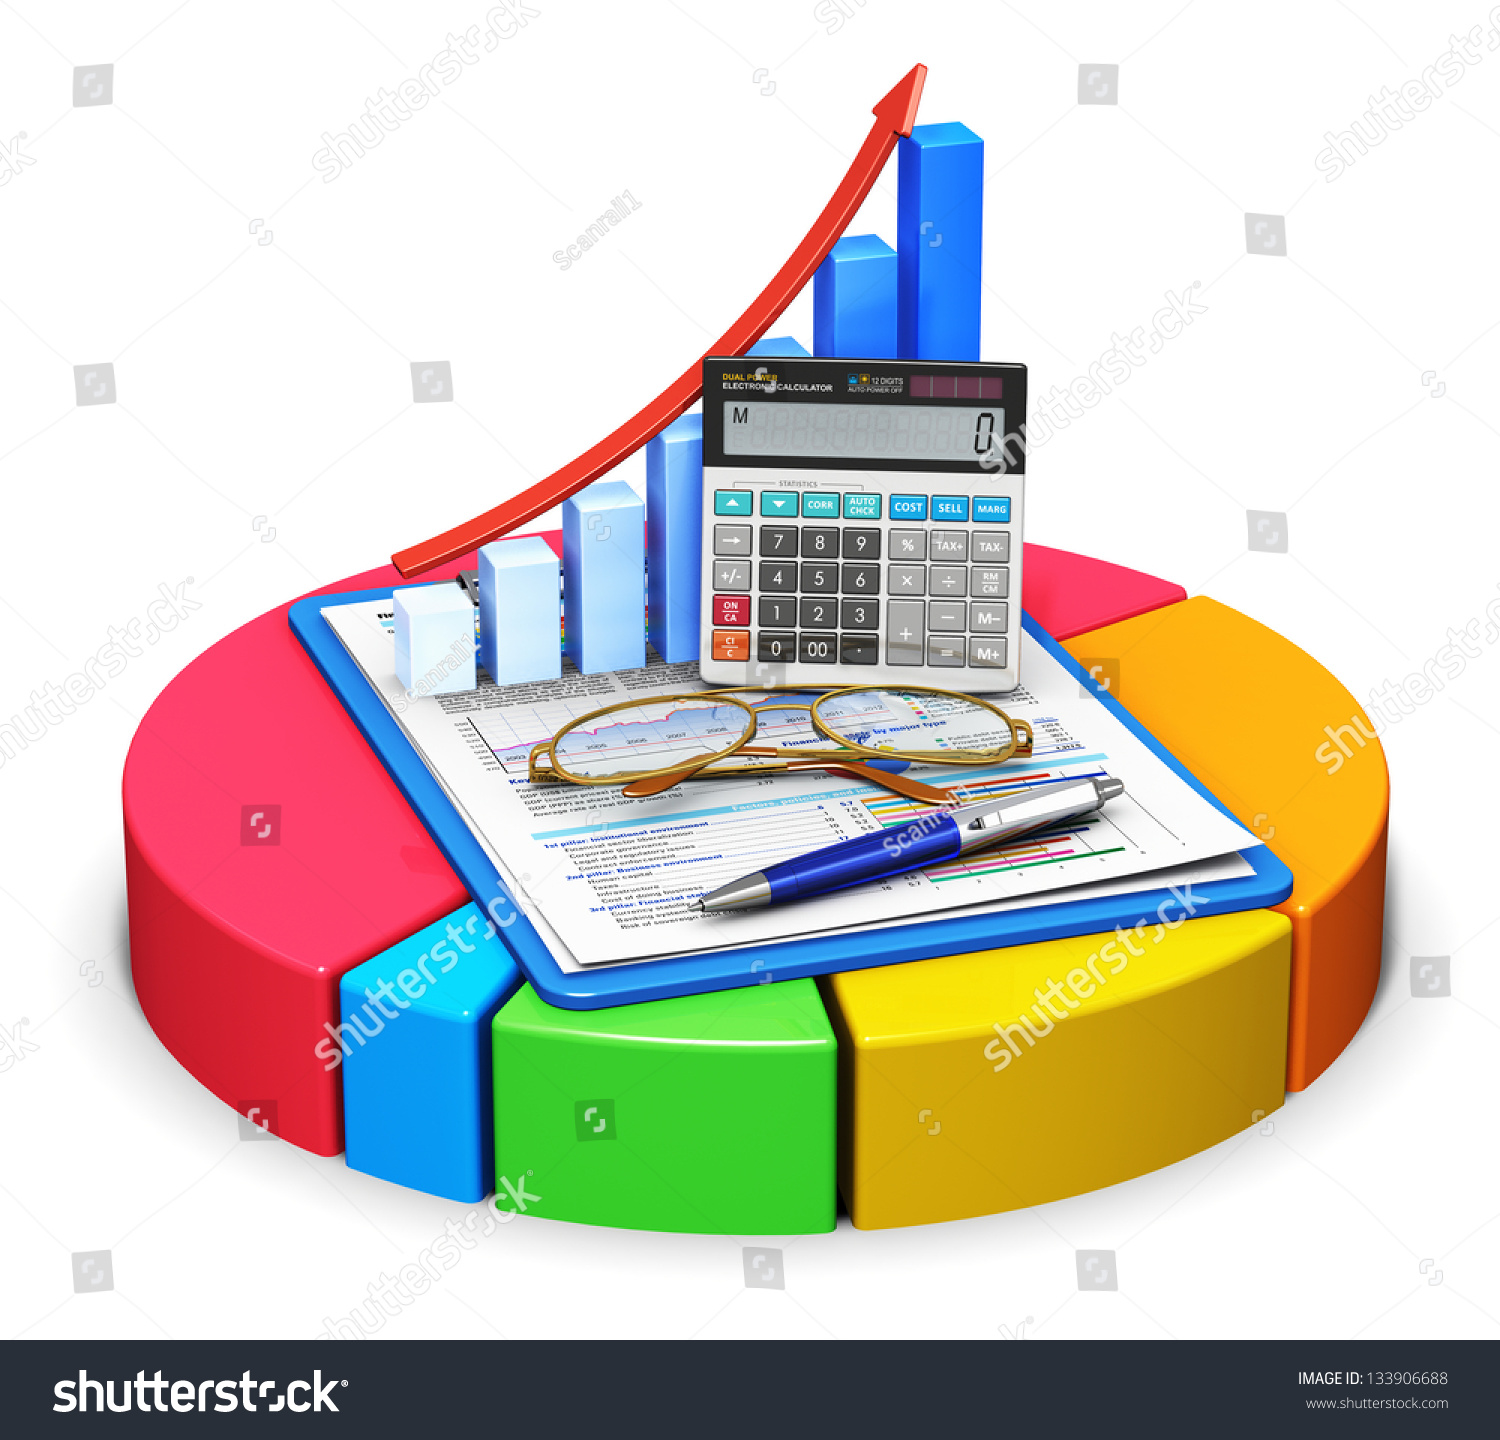 Corporate Finance: Business Finance Tax Accounting Statistics Analytic Stock